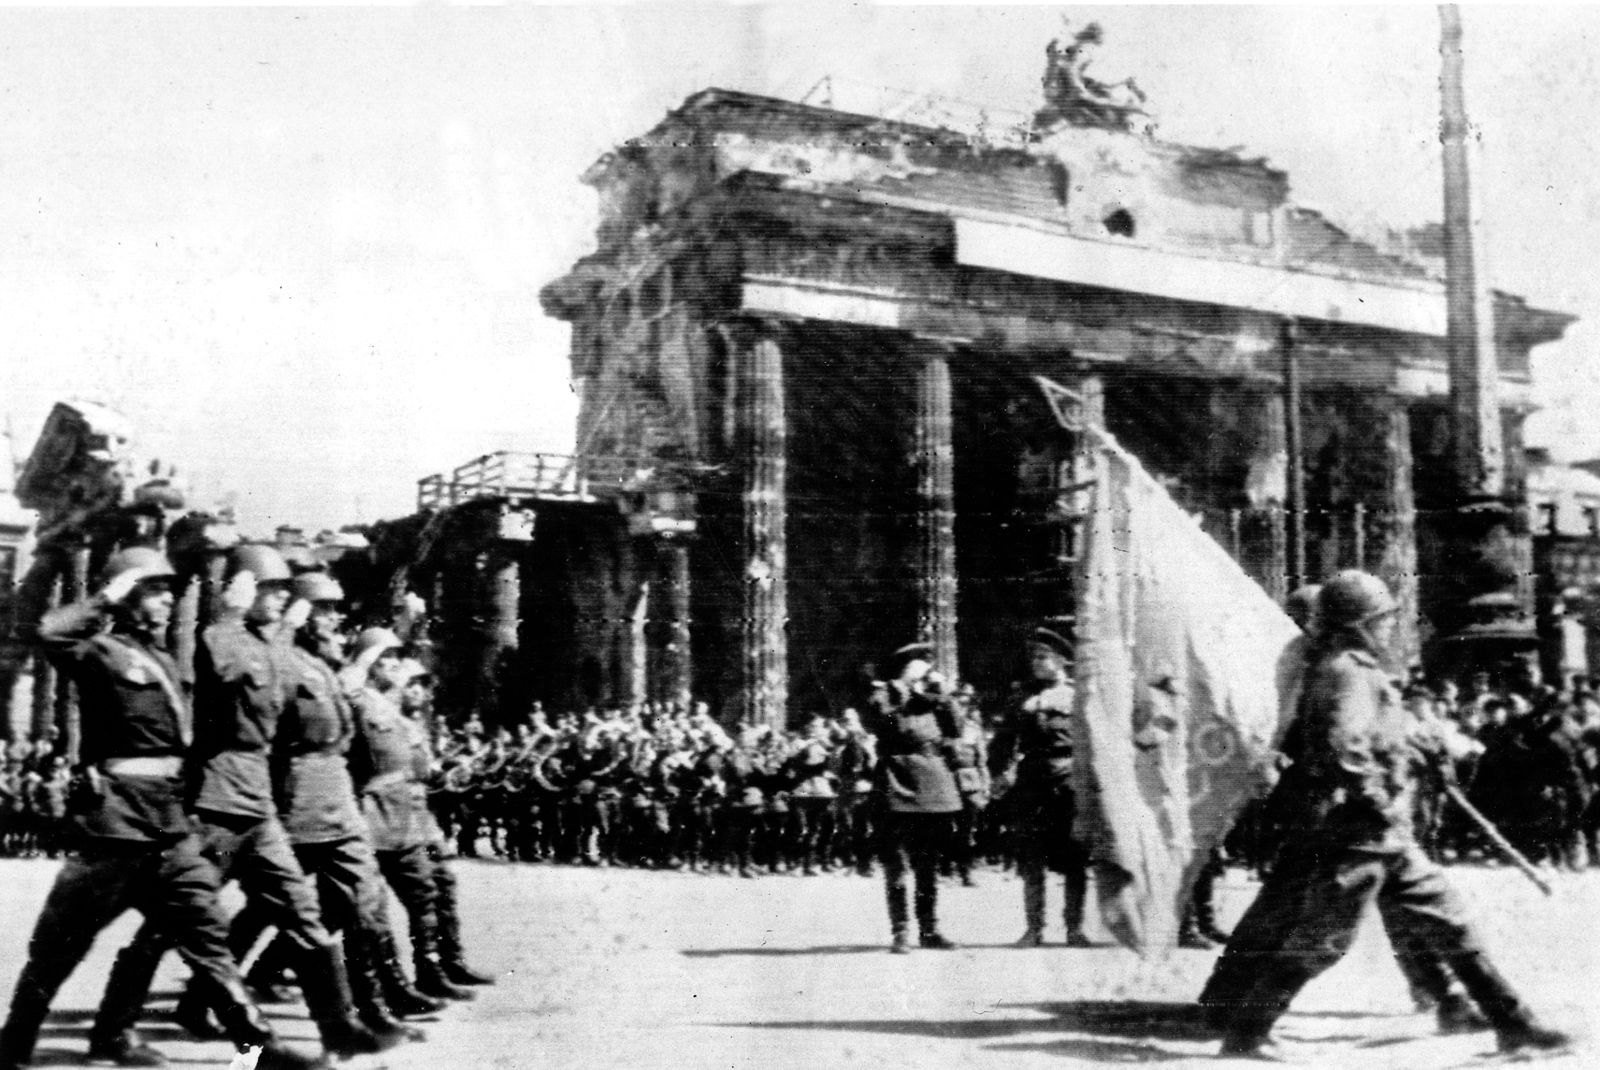 RUSSIANS MARCH IN BERLIN